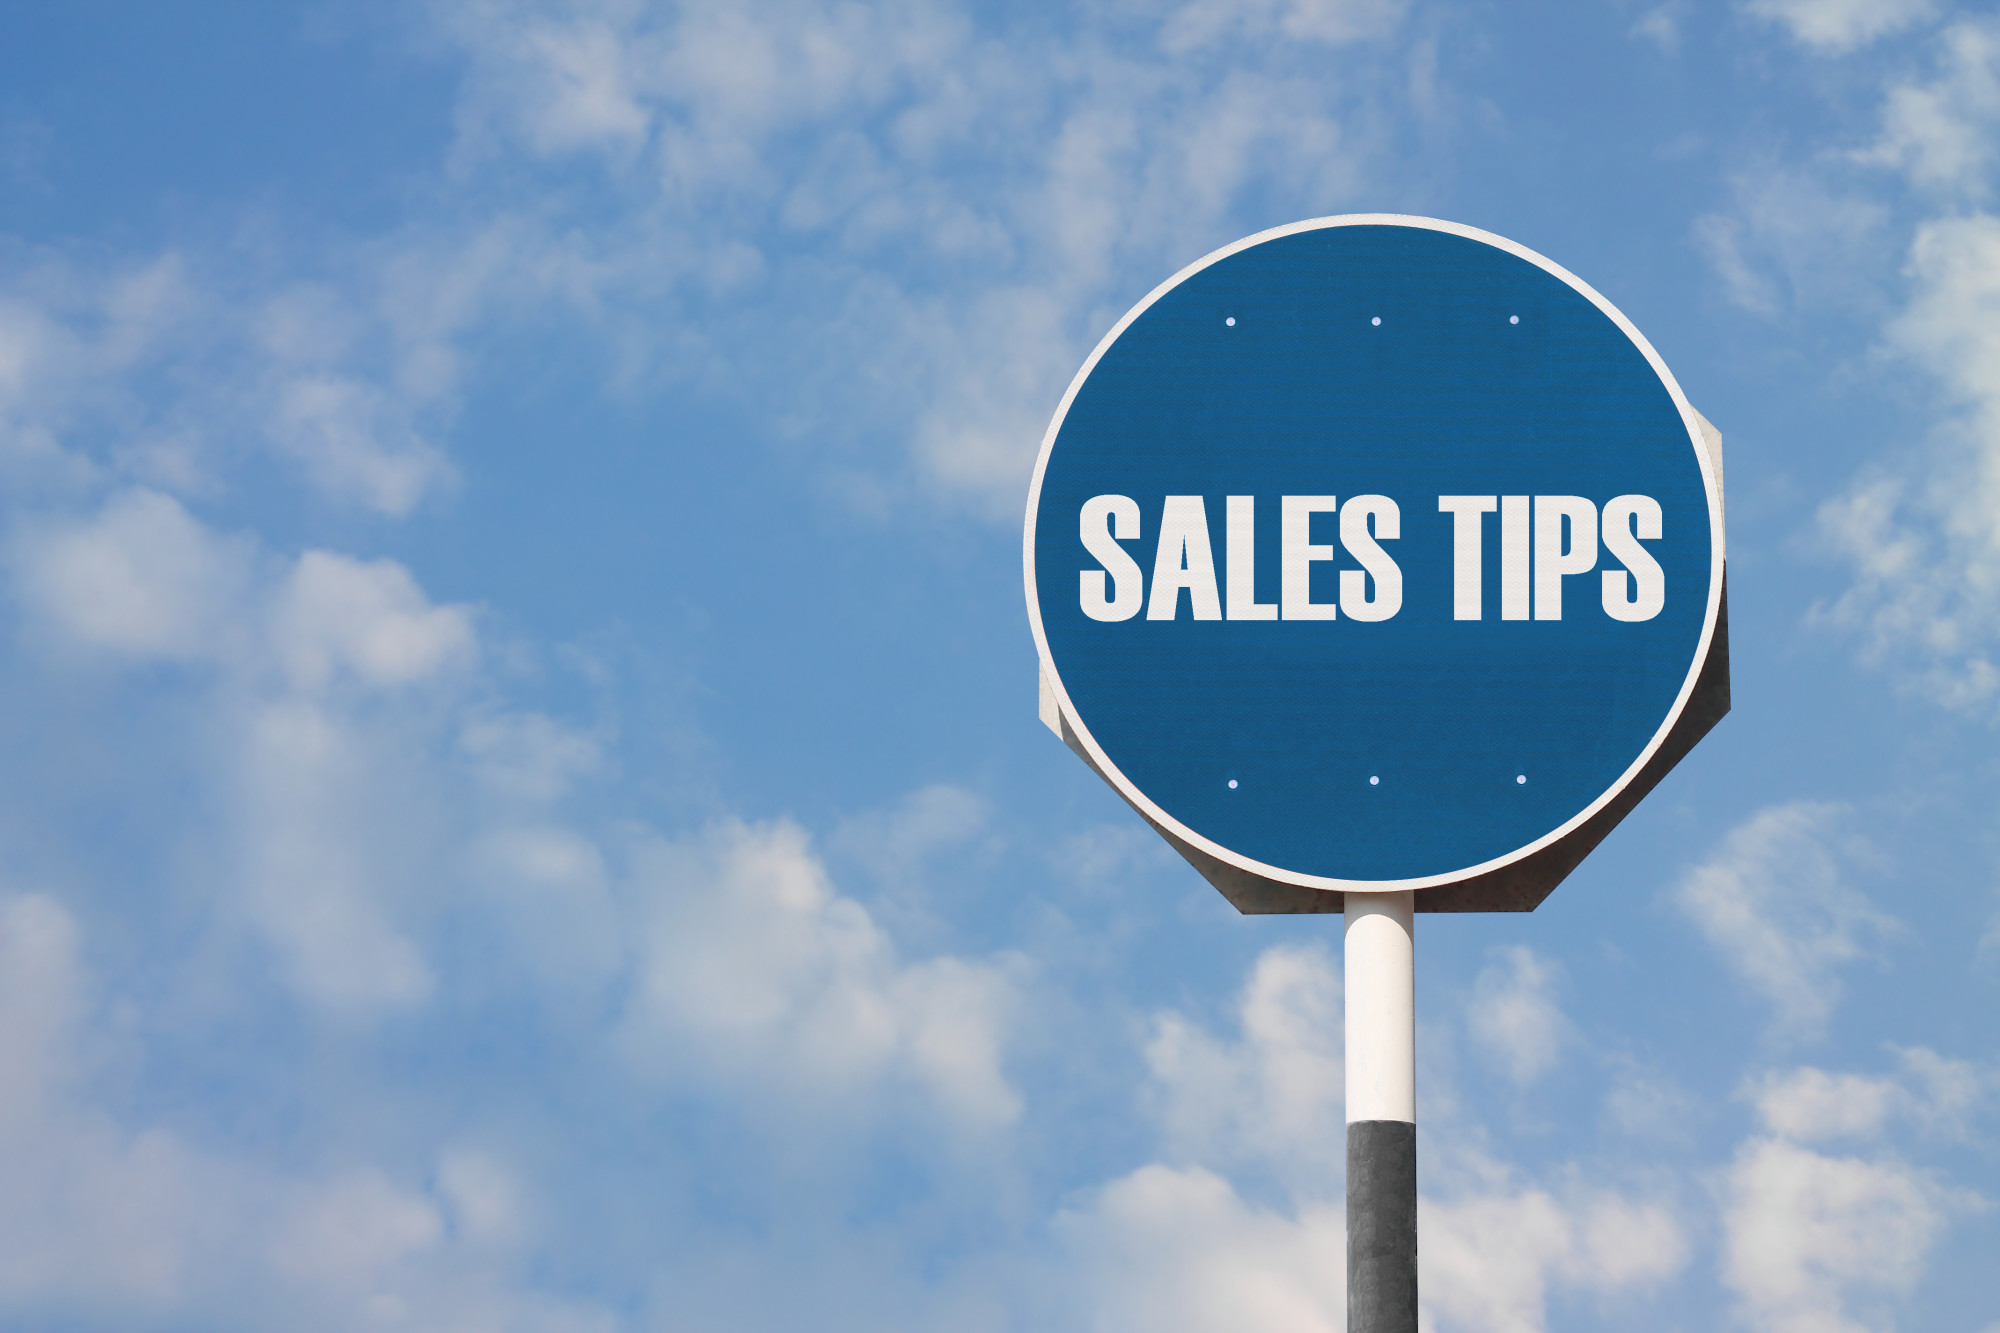 sales tips on sign